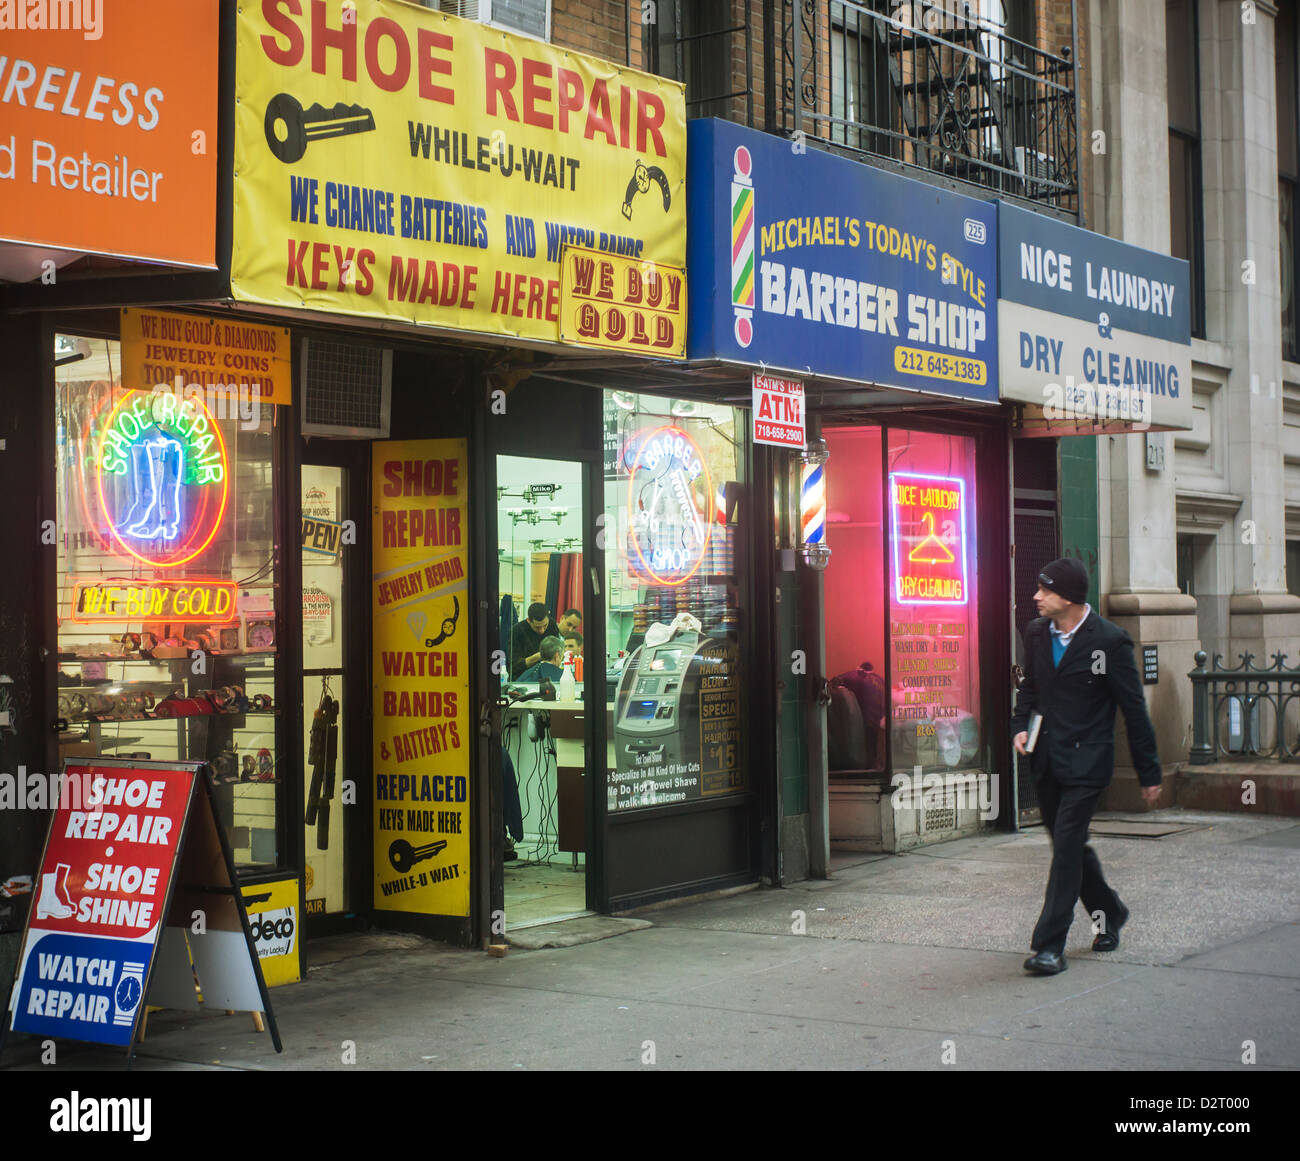 Mom and Pop small businesses  a shoe repair  a barber and a laundry     Mom and Pop small businesses  a shoe repair  a barber and a laundry  in the  New York neighborhood of Chelsea